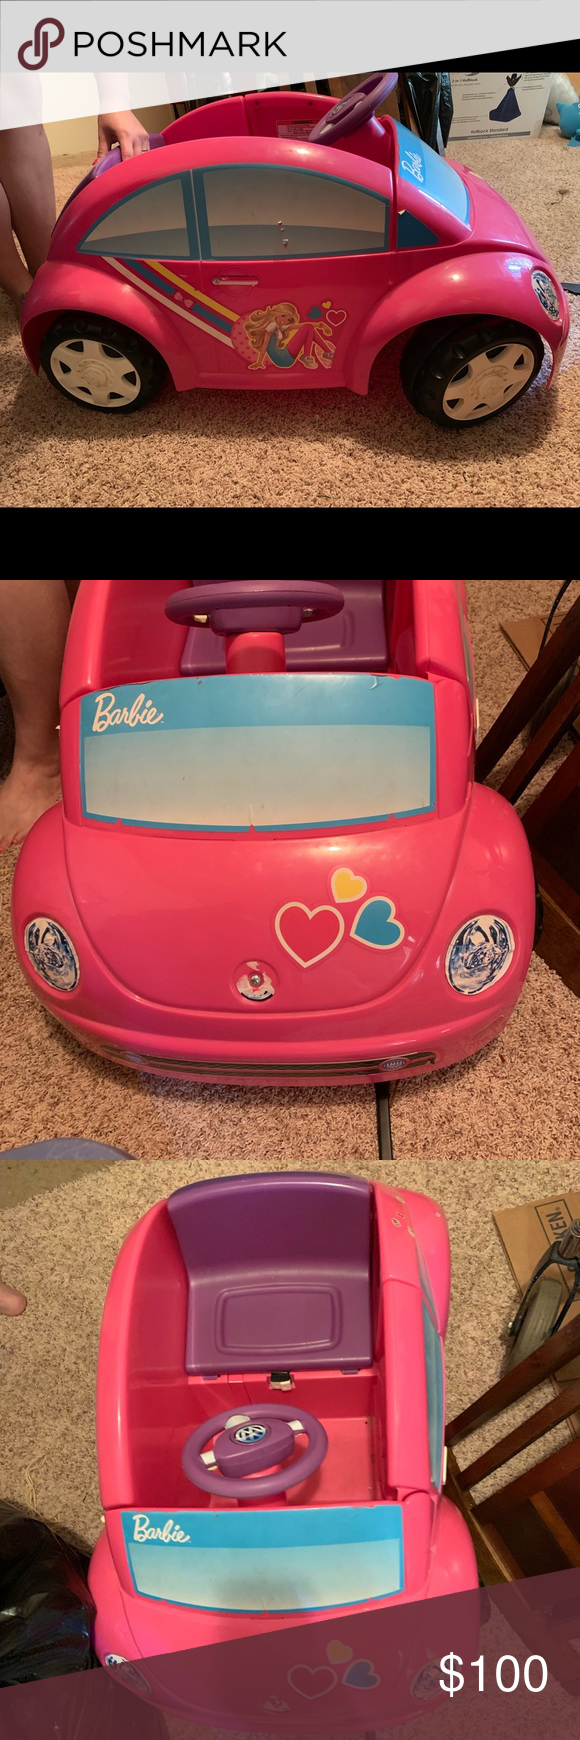 Barbie car It's like new... my lil niece don't ride it... and asking 100 or best offer Other #barbiecars Barbie car It's like new... my lil niece don't ride it... and asking 100 or best offer Other #barbiecars